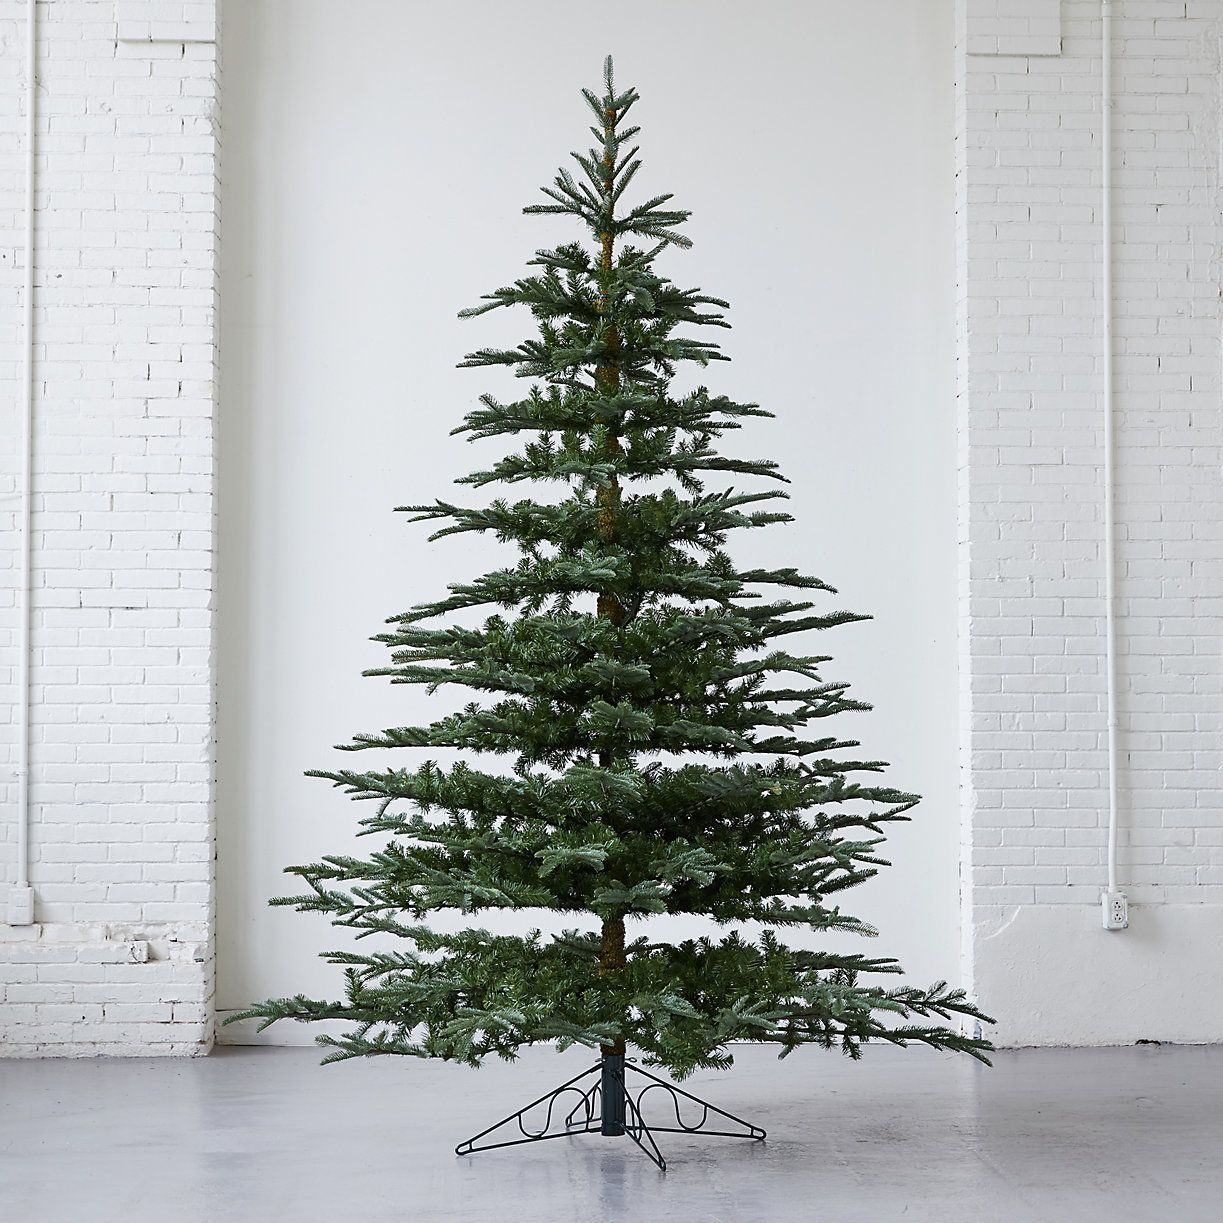 Types Of Fir Trees For Christmas: Strikingly Natural, Each Of These Faux Trees Is Modeled